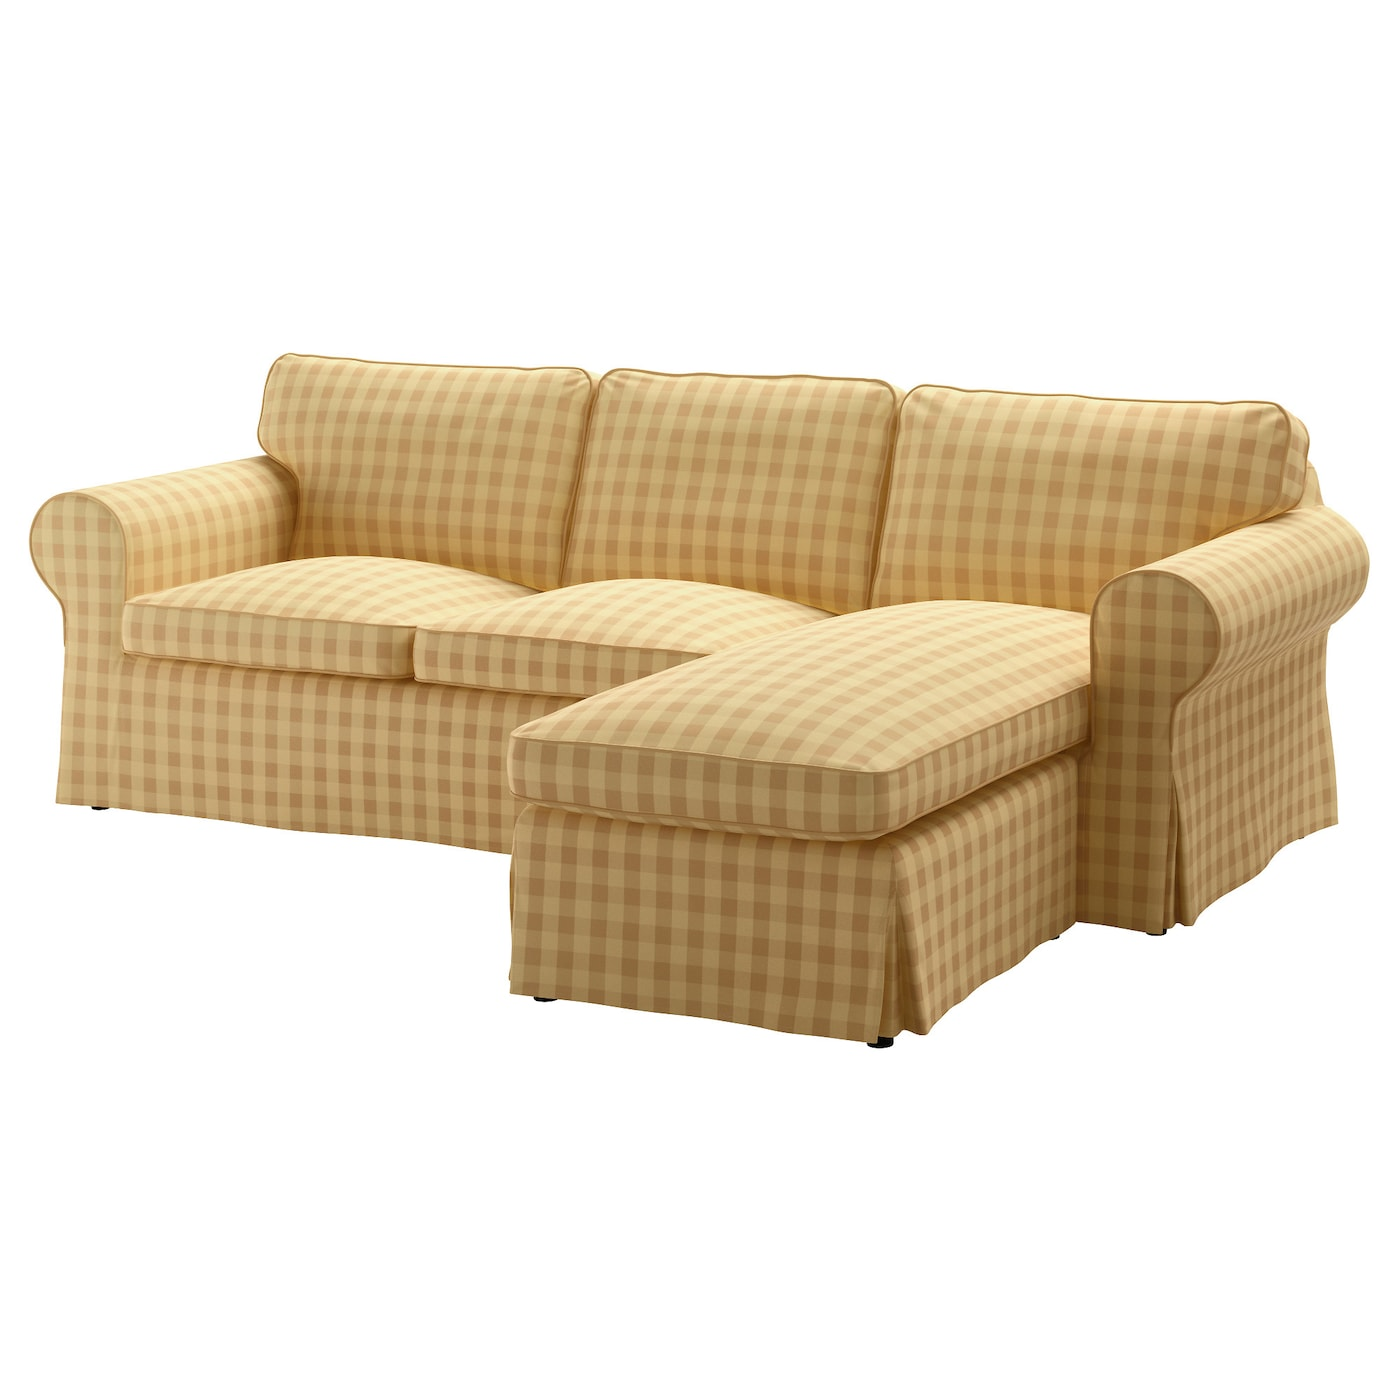 Ektorp cover two seat sofa w chaise longue skaftarp yellow - Fundas chaise longue ...